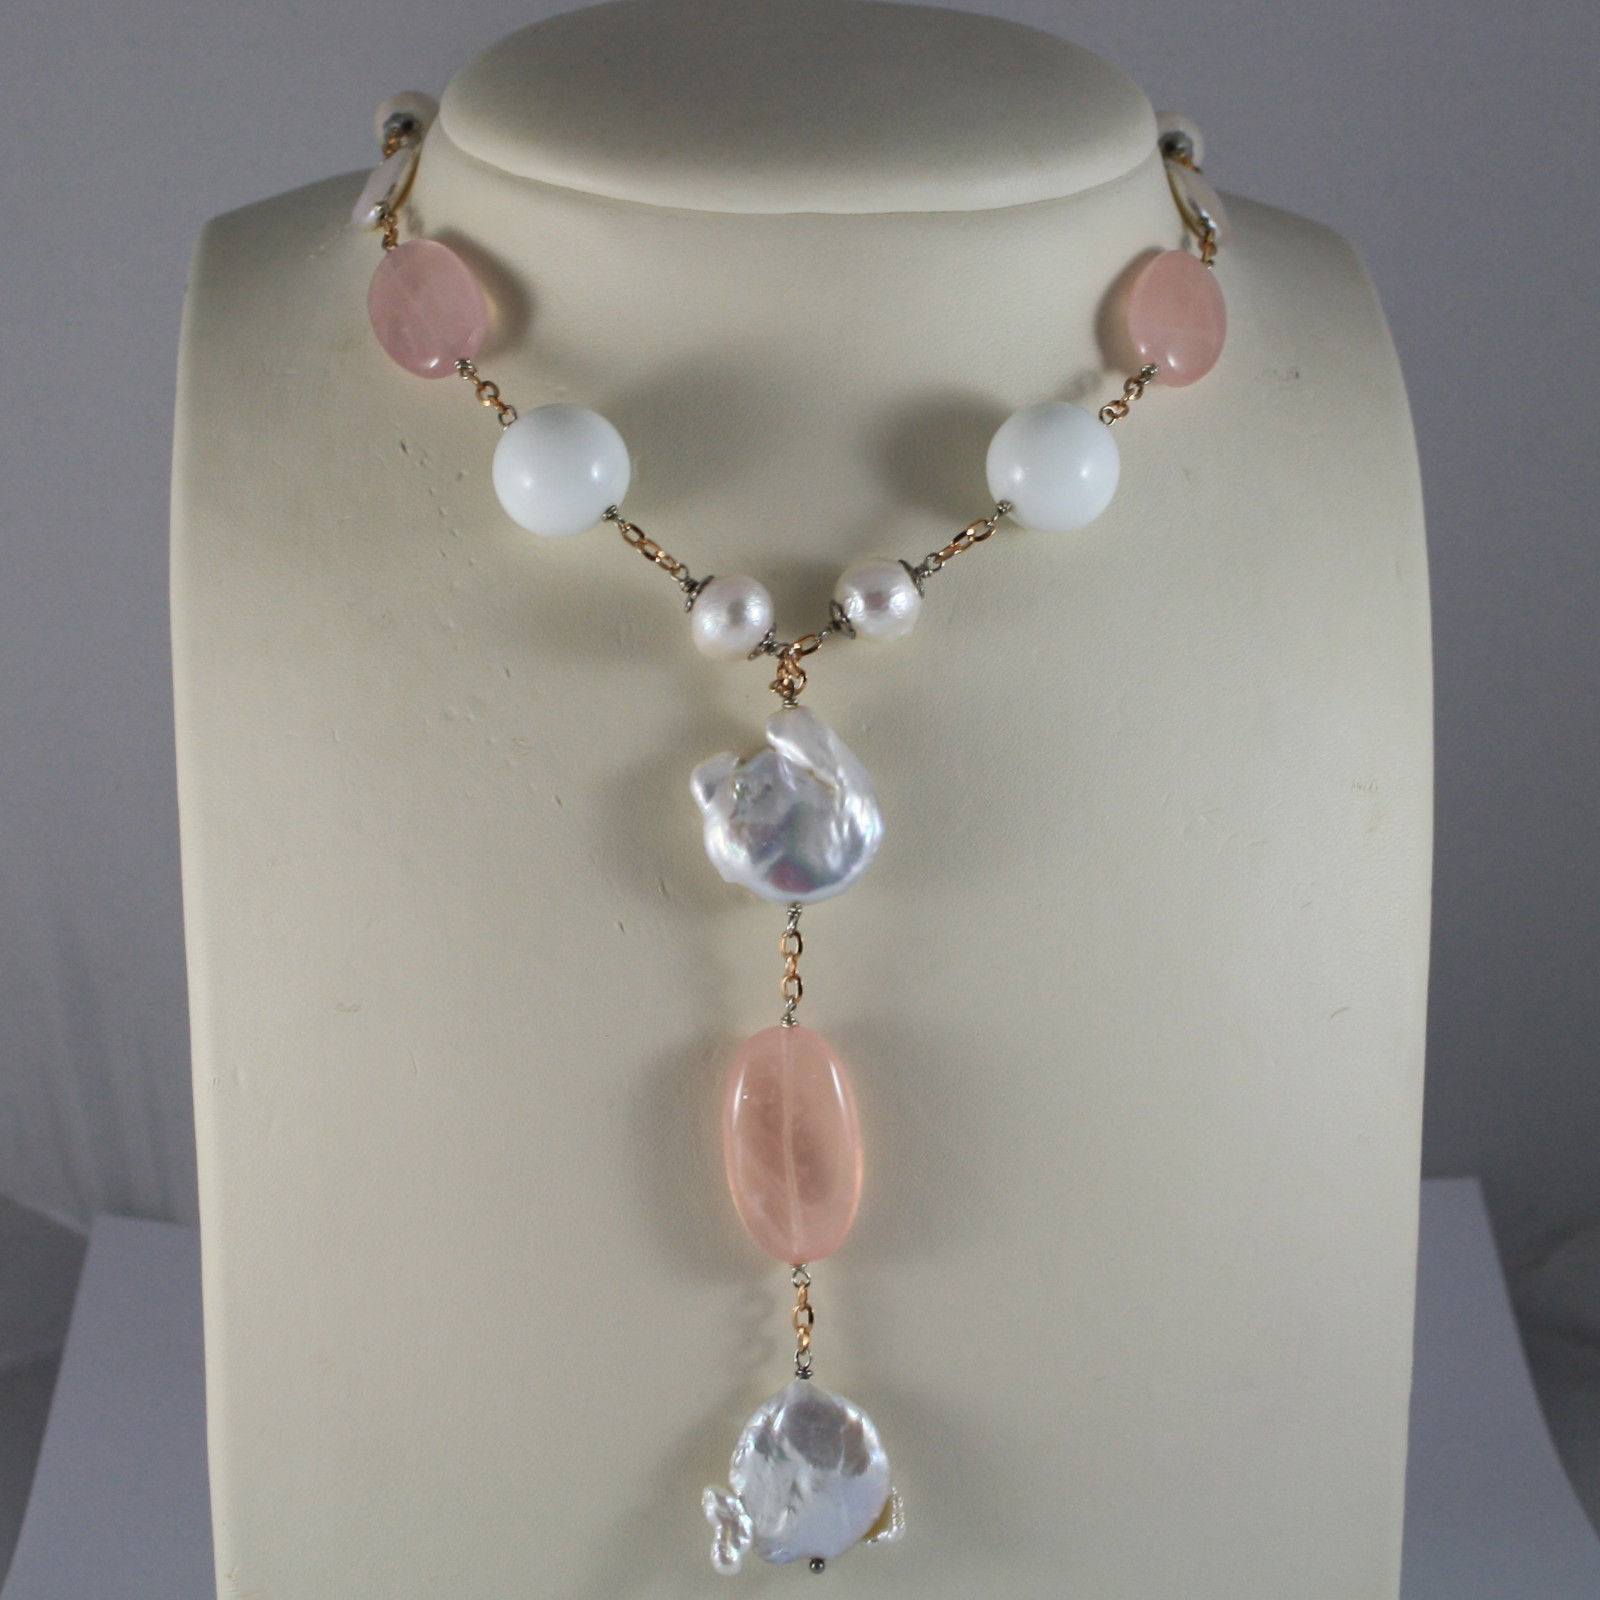 .925 RHODIUM SILVER ROSE GOLD PLATED NECKLACE WITH PINK QUARTZ, PEARL AND AGATE